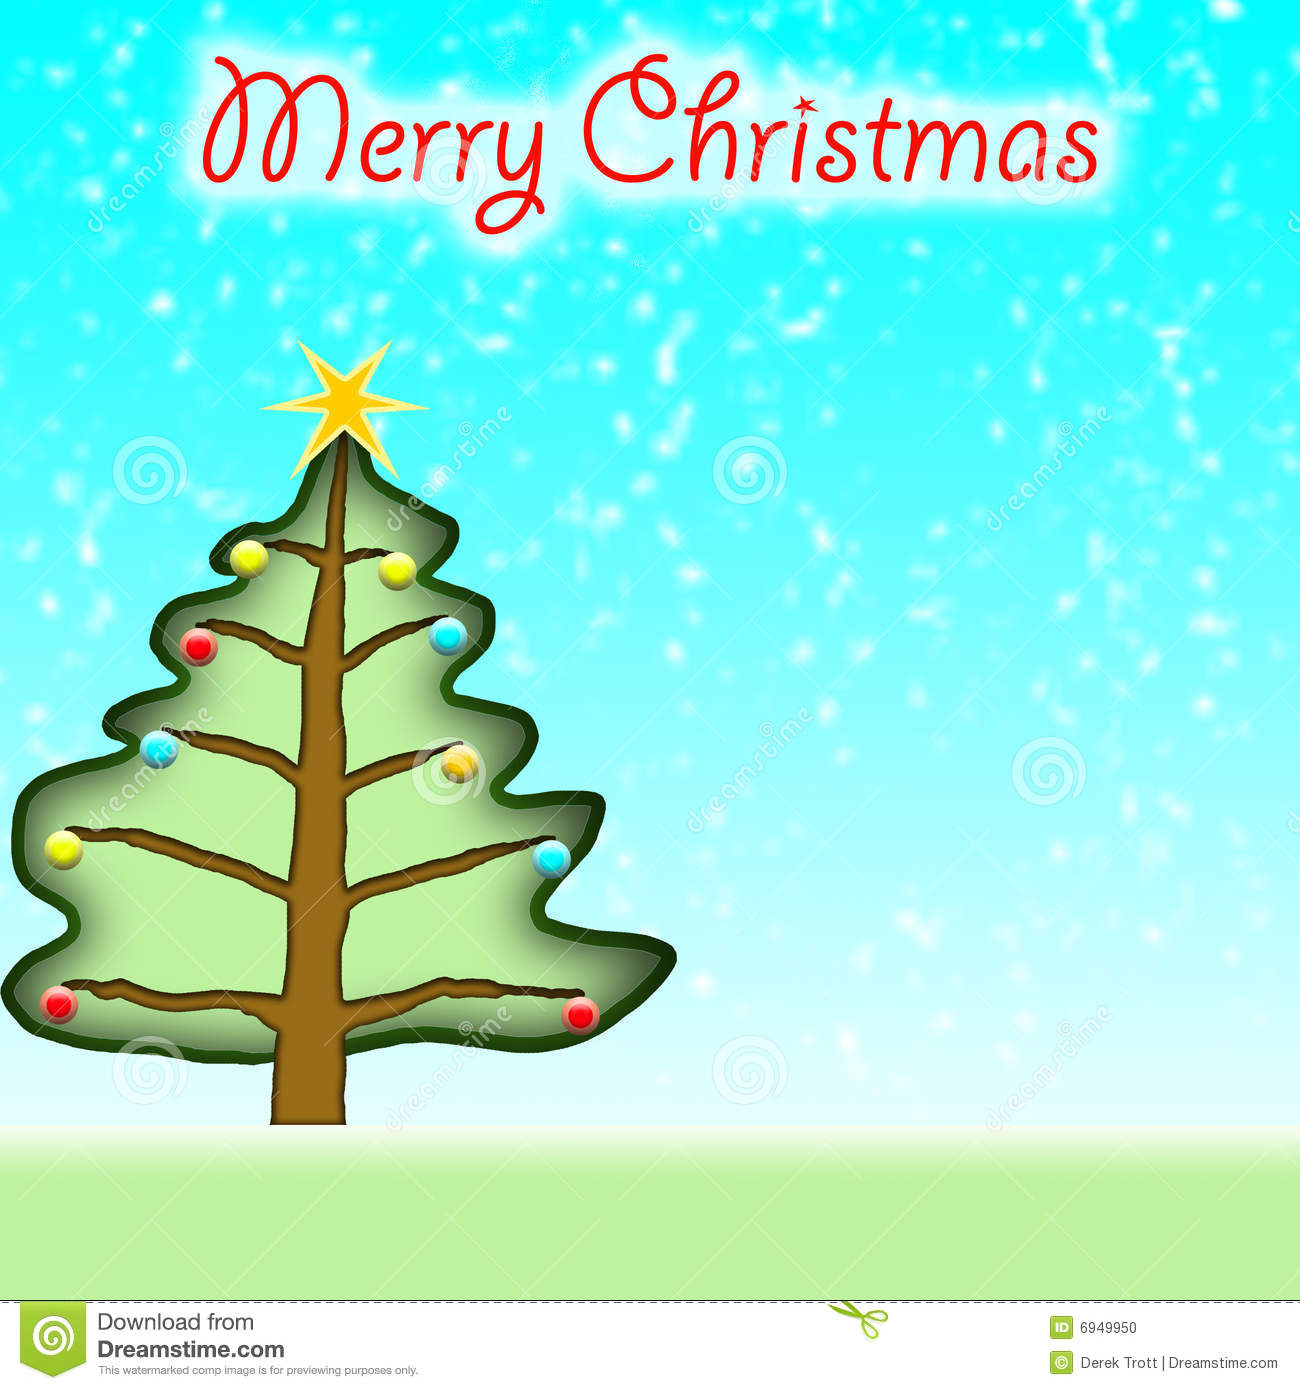 Mery Christmas.Christmas Tree Mery Christmas Stock Illustration